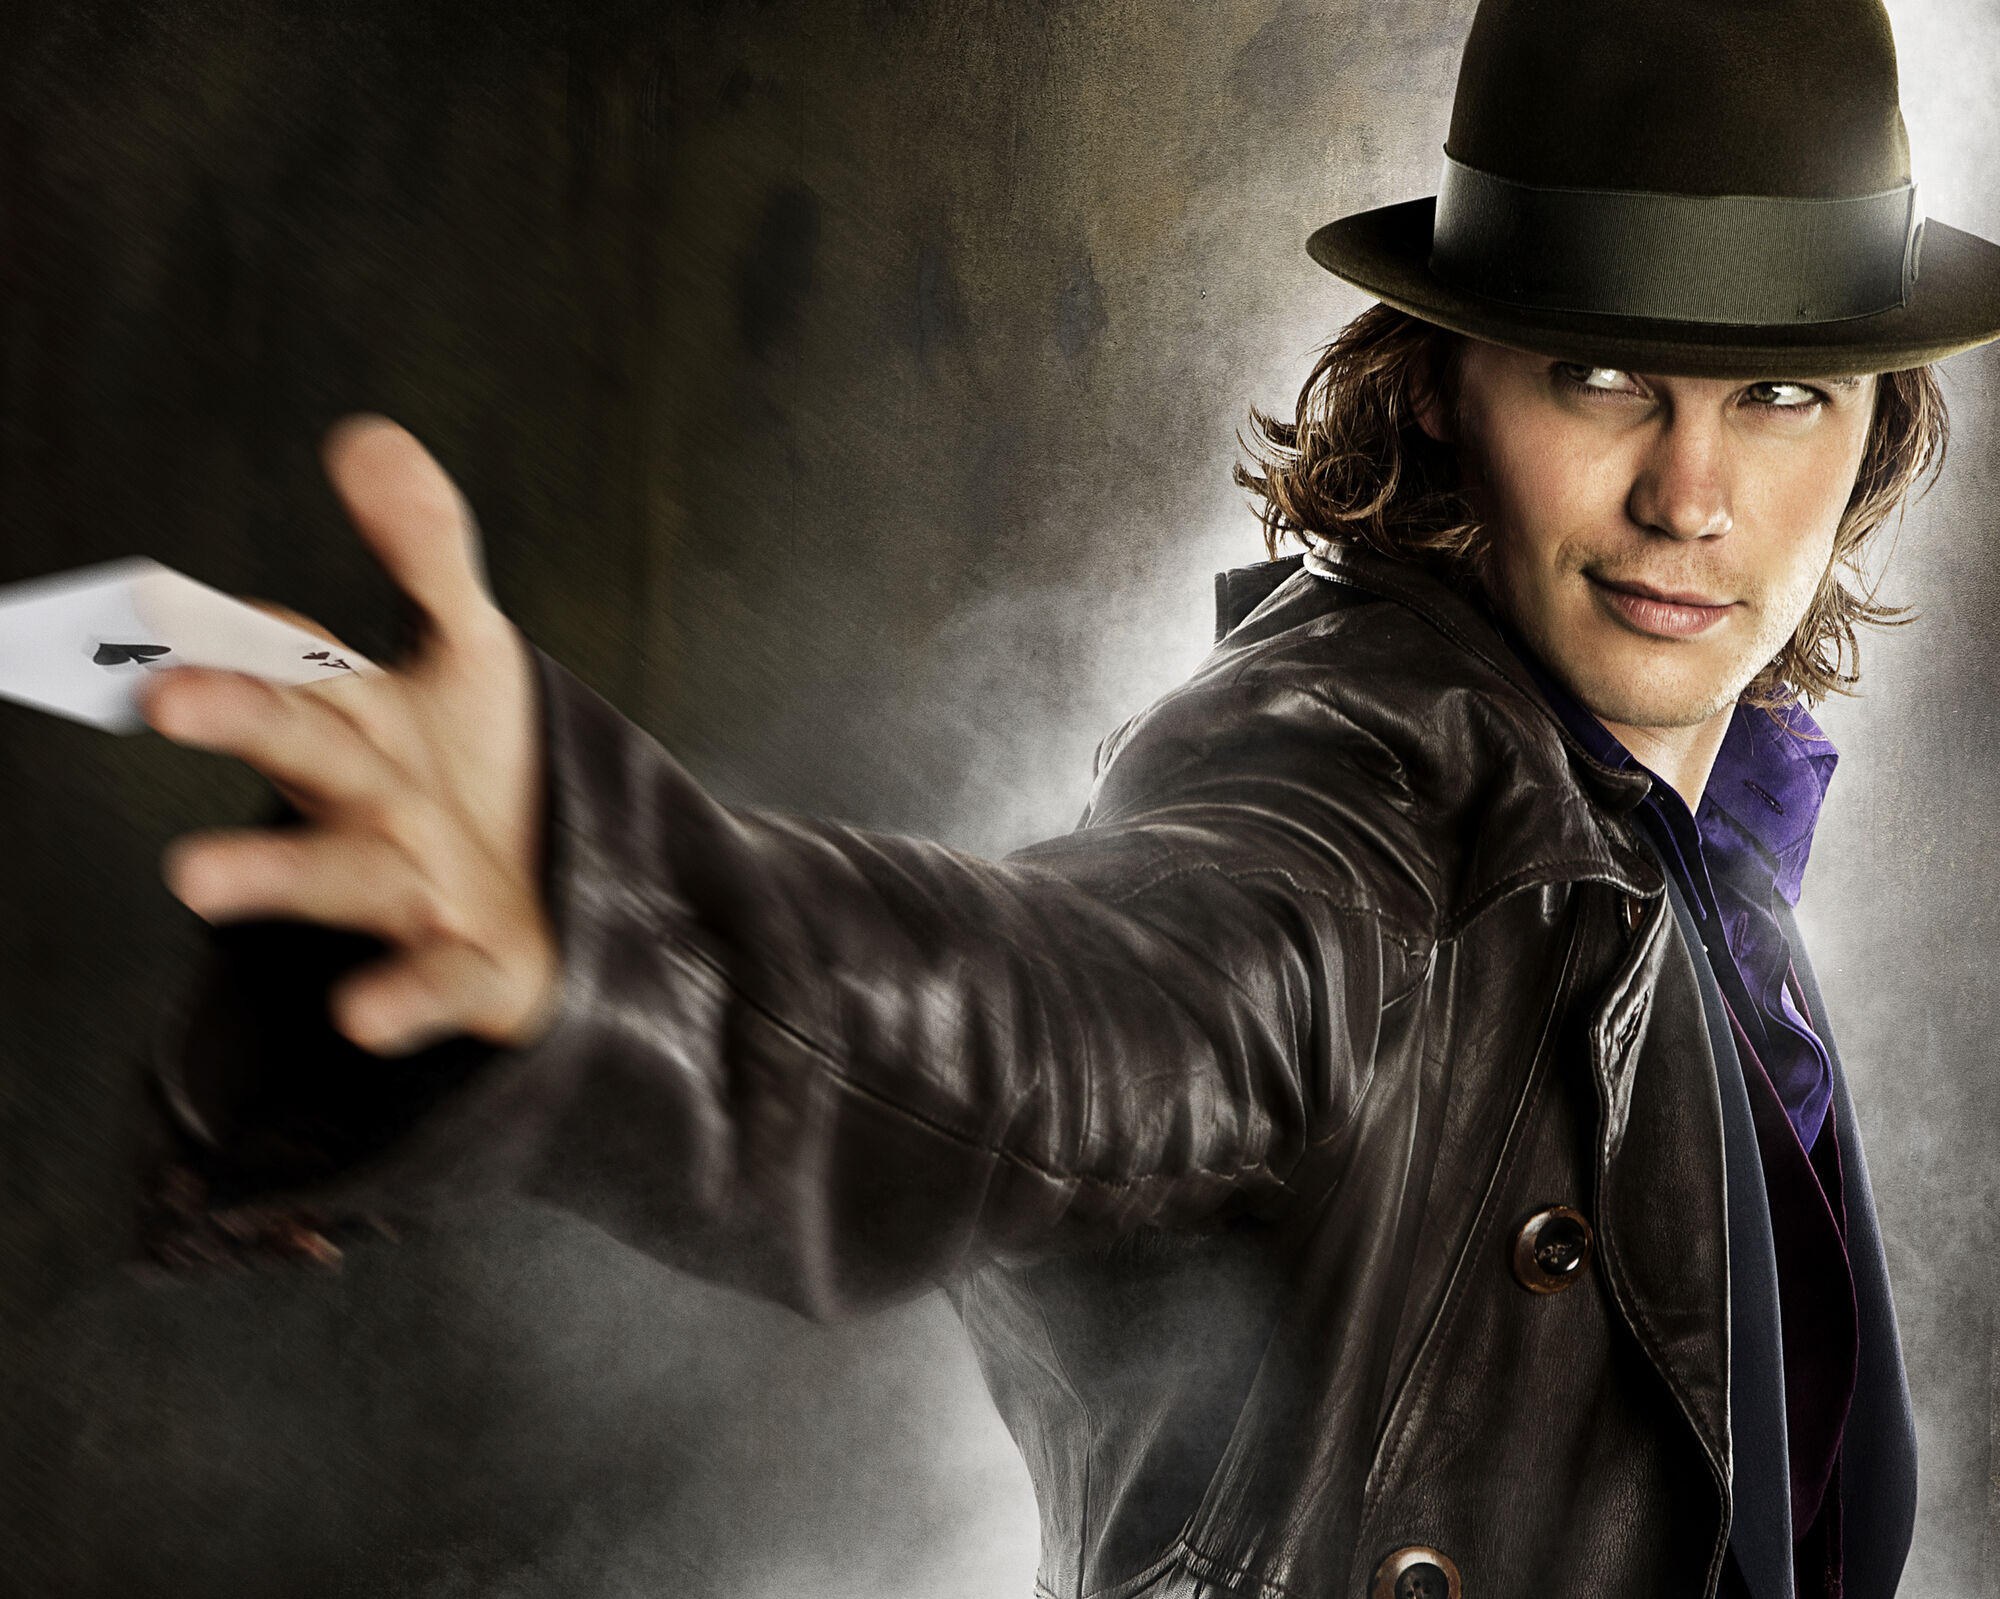 Taylor Kitsch playing as Gambit in X-Men Wolverine